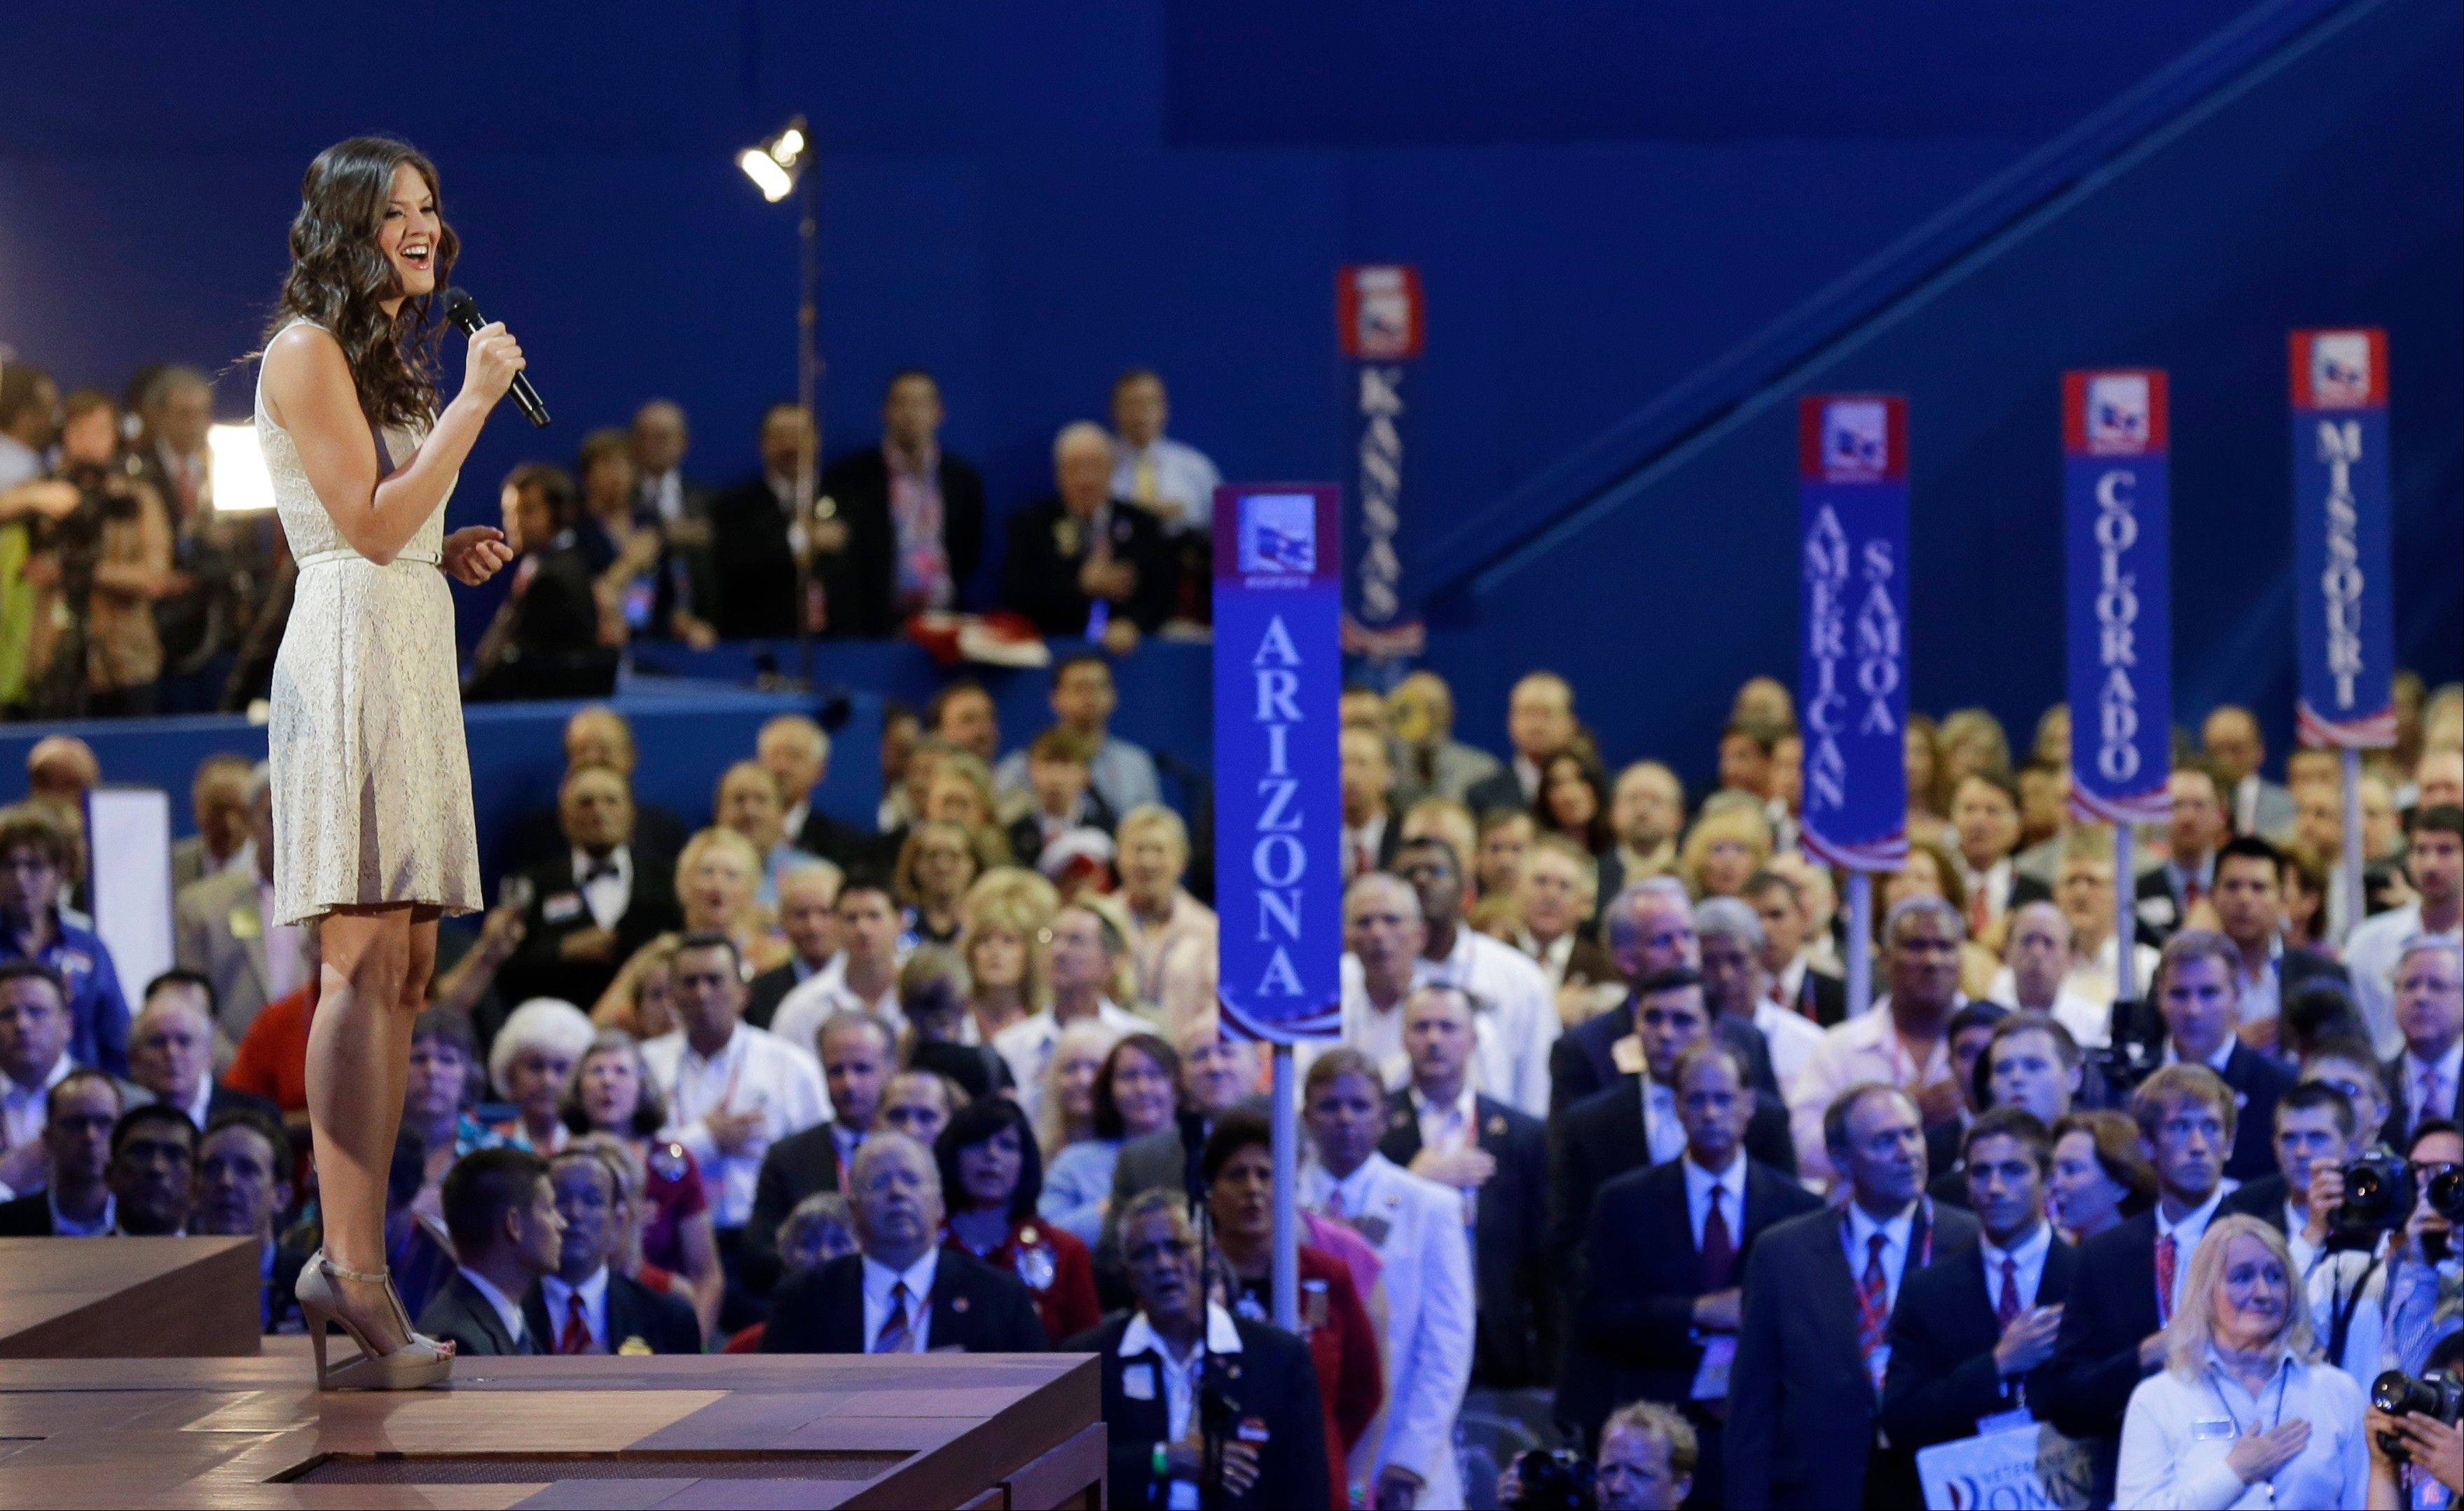 Ayla Brown sings the National Anthem during the Republican National Convention in Tampa, Fla., on Wednesday, Aug. 29, 2012.